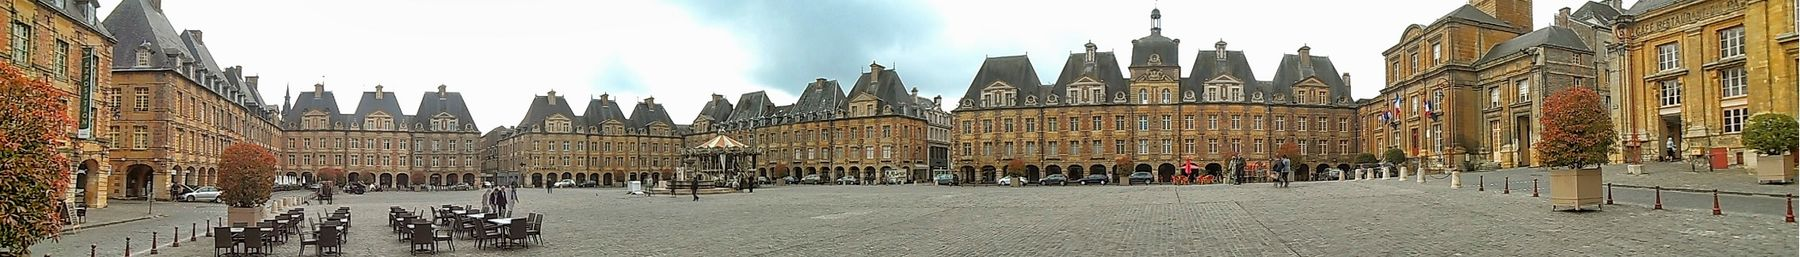 Place Ducale, Panormablick.jpeg